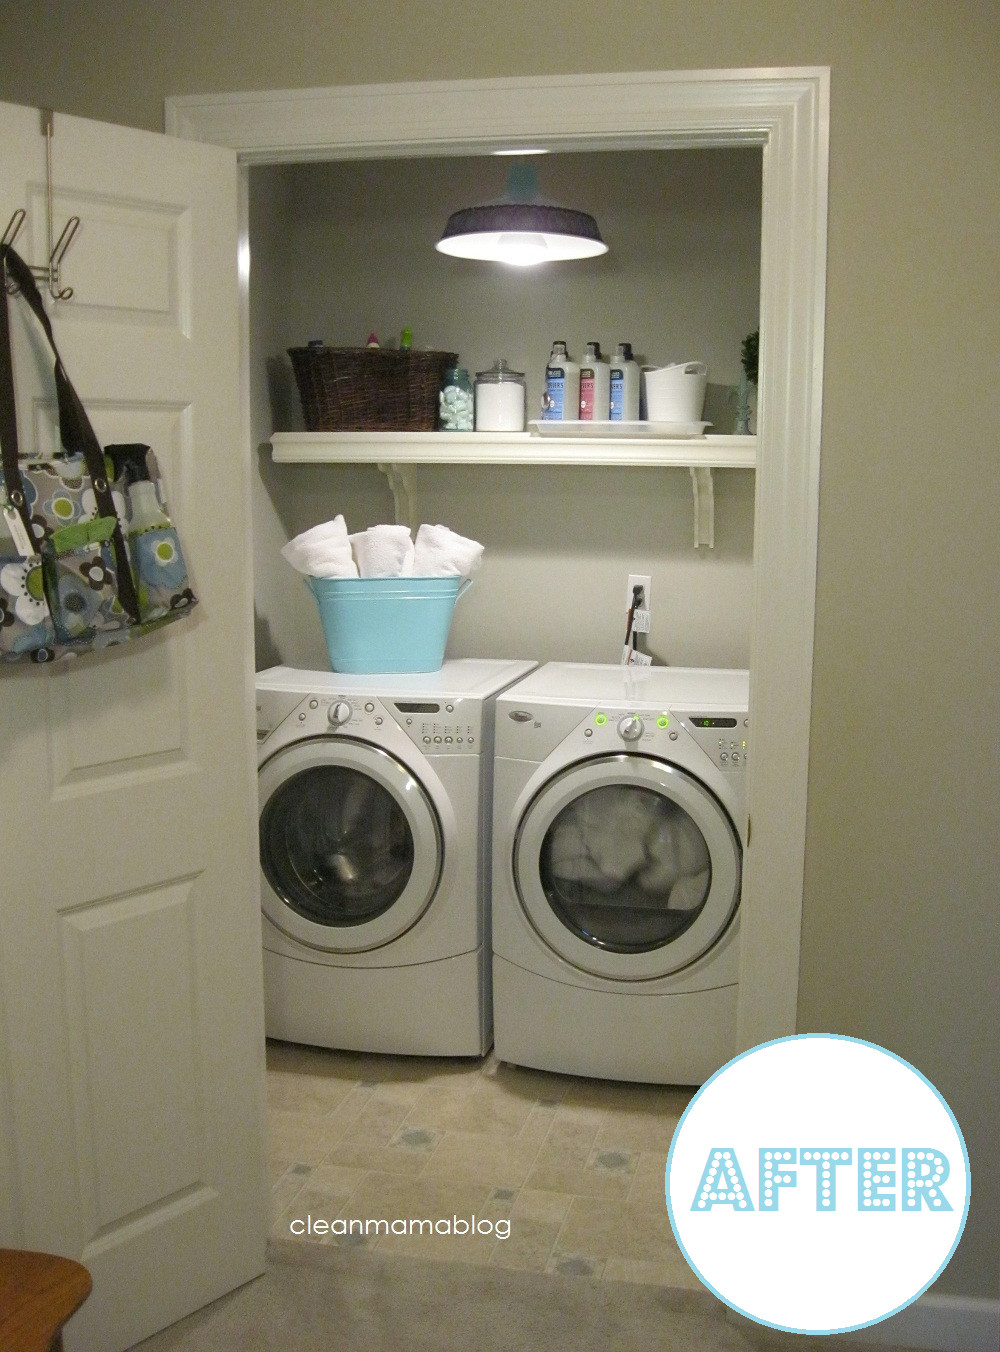 Best ideas about Diy Laundry Room . Save or Pin Wayfair DIY Challenge My Laundry Room Clean Mama Now.